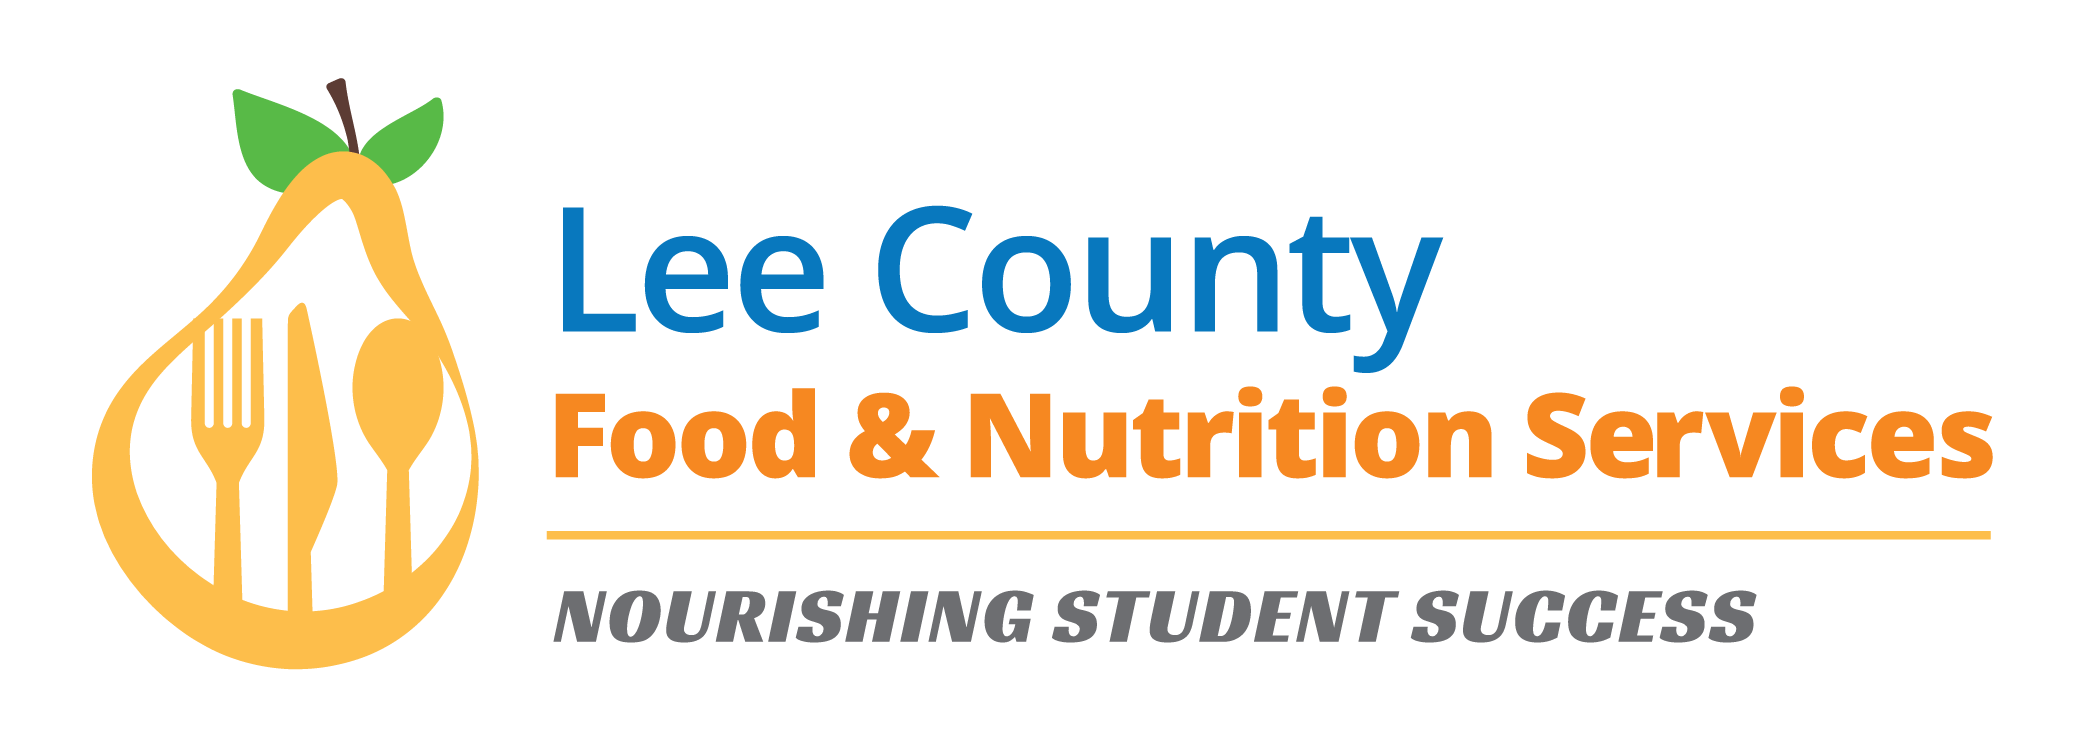 logo for food and nutrition services